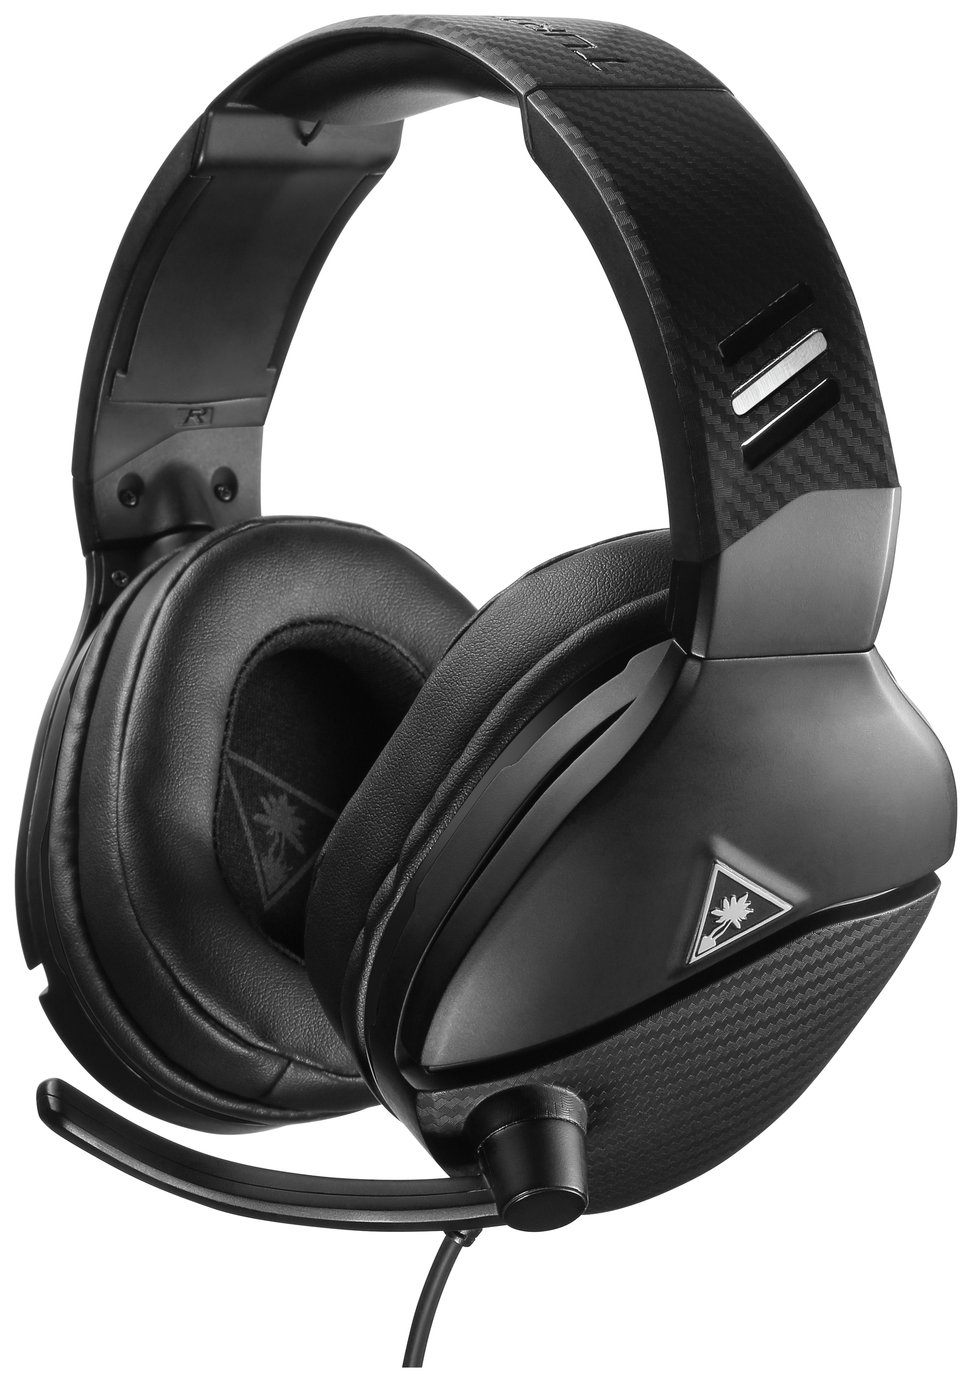 f3f71507a1d Turtle Beach Atlas One Gaming Headset PC/Xbox One/PS4/Switch from Turtle